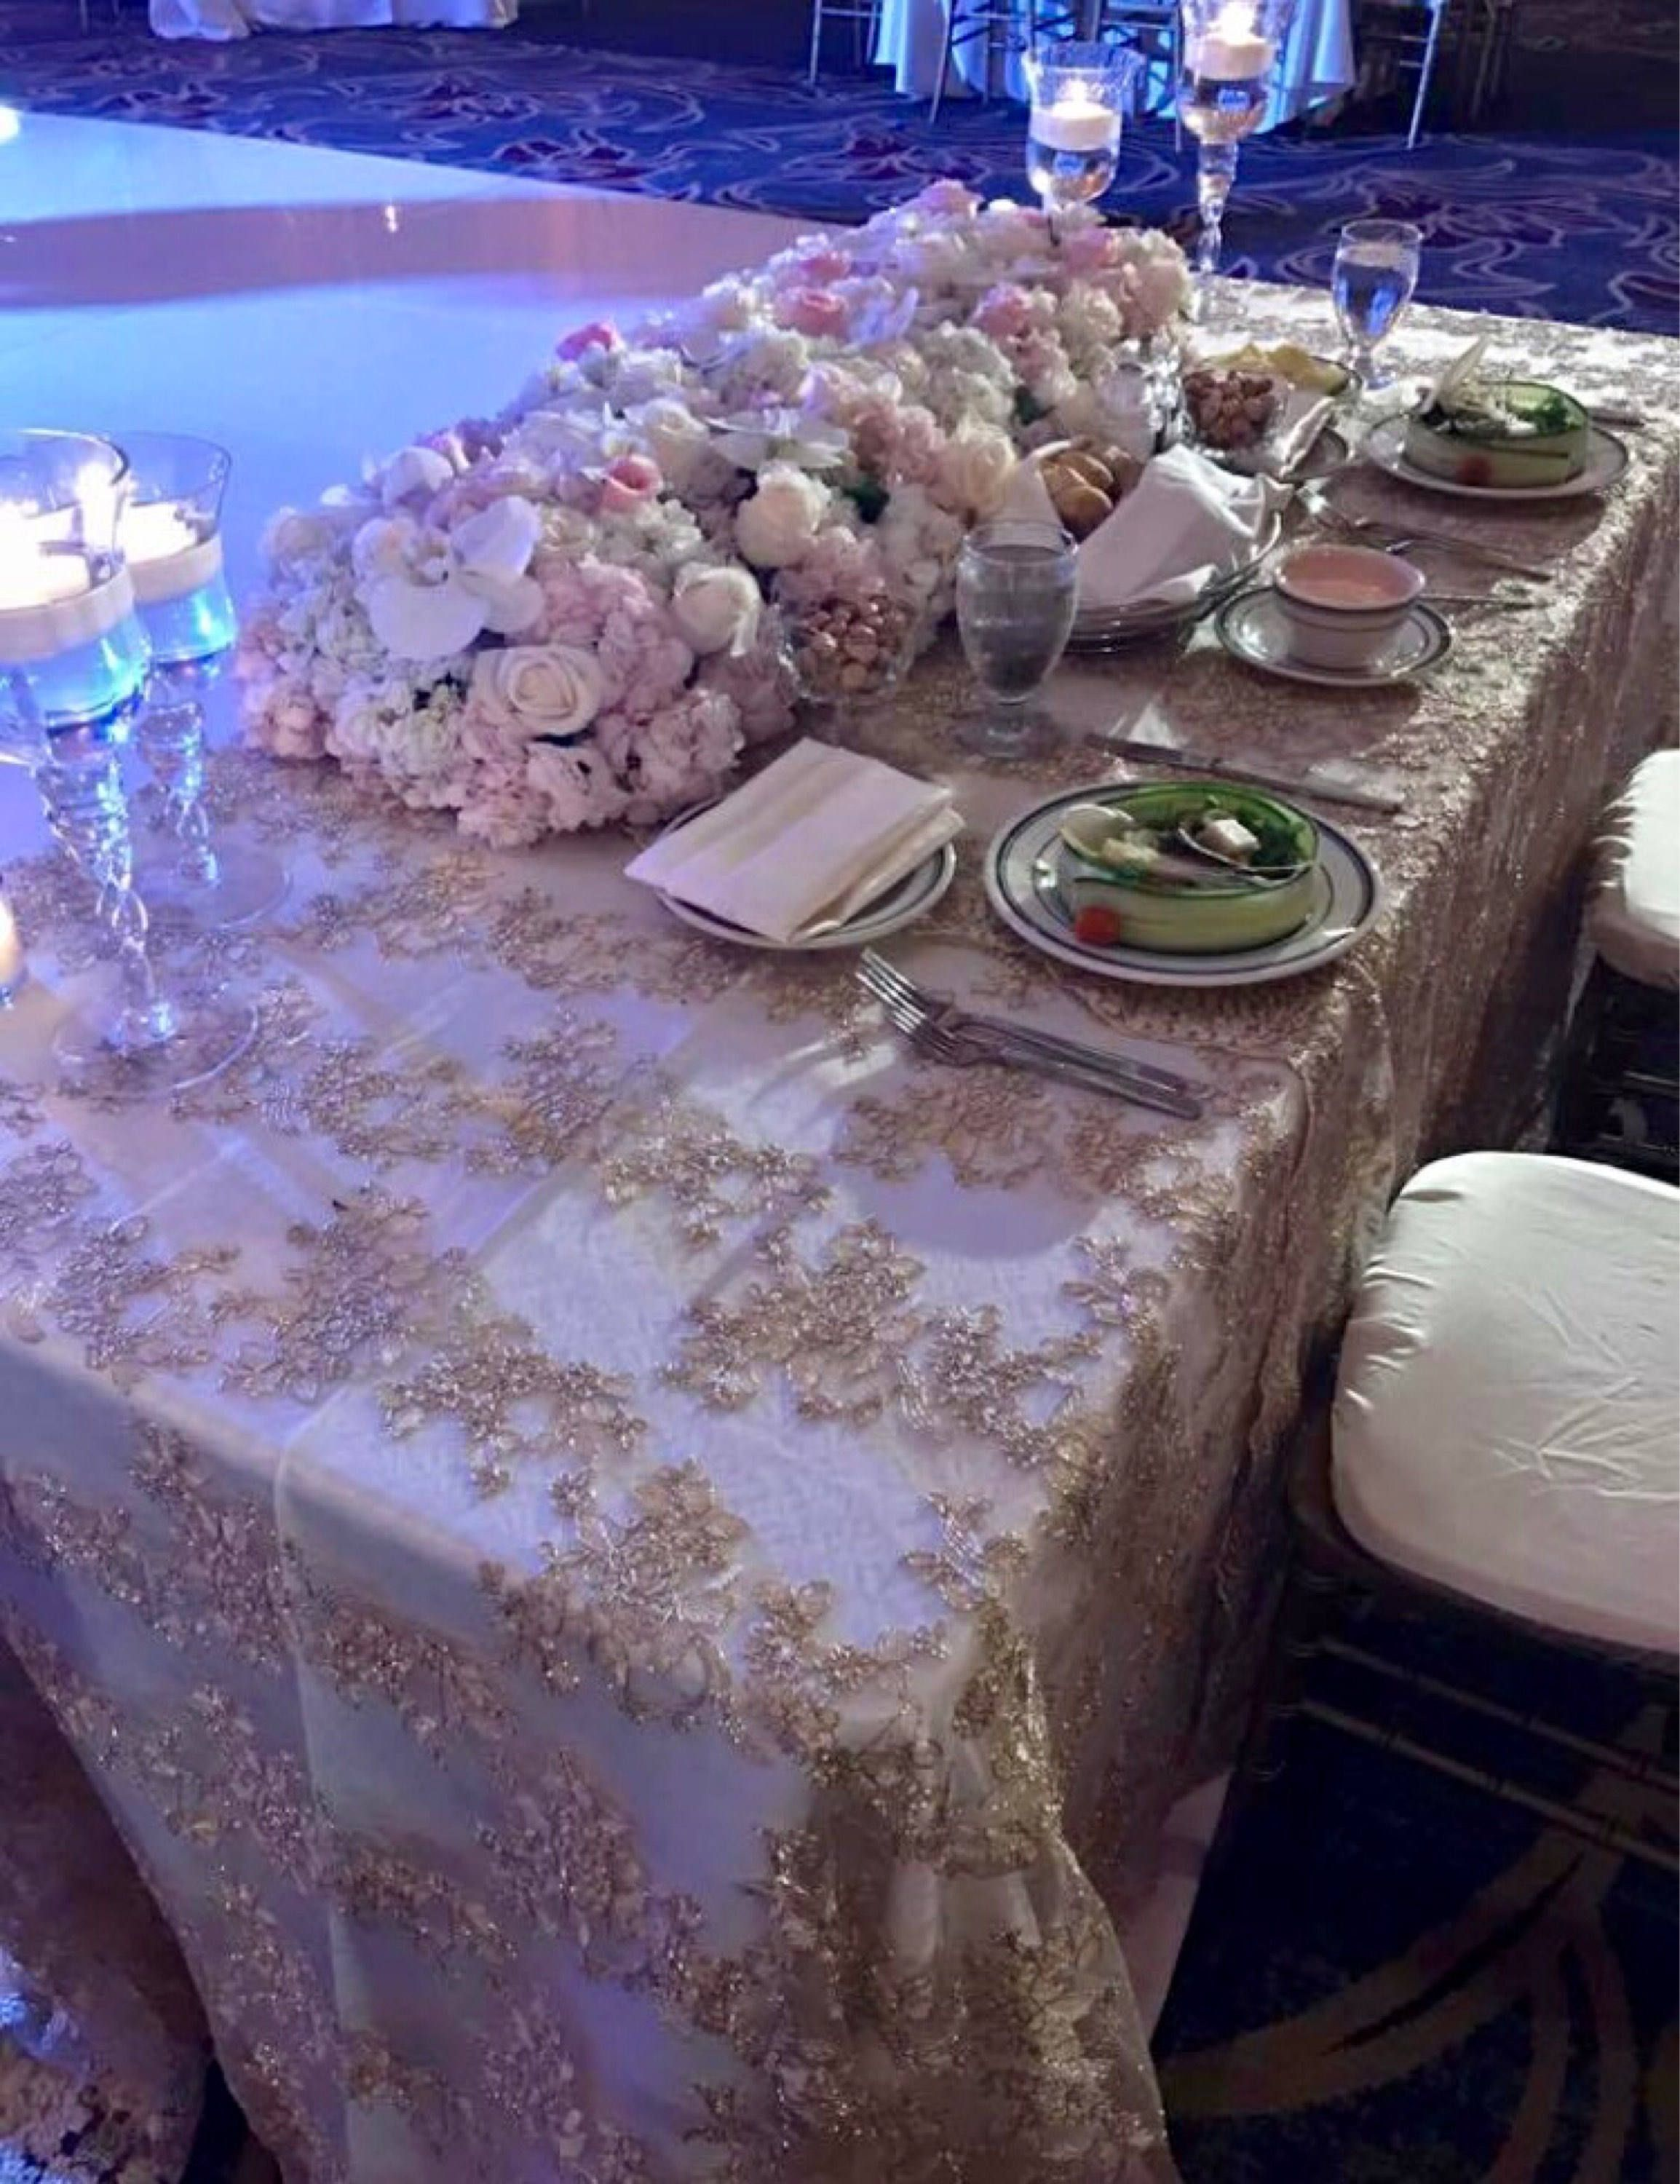 Vintage Wedding Table Cloth, Gold Tablecloth, Overlay,lace Tablecloth, Table  Runner,